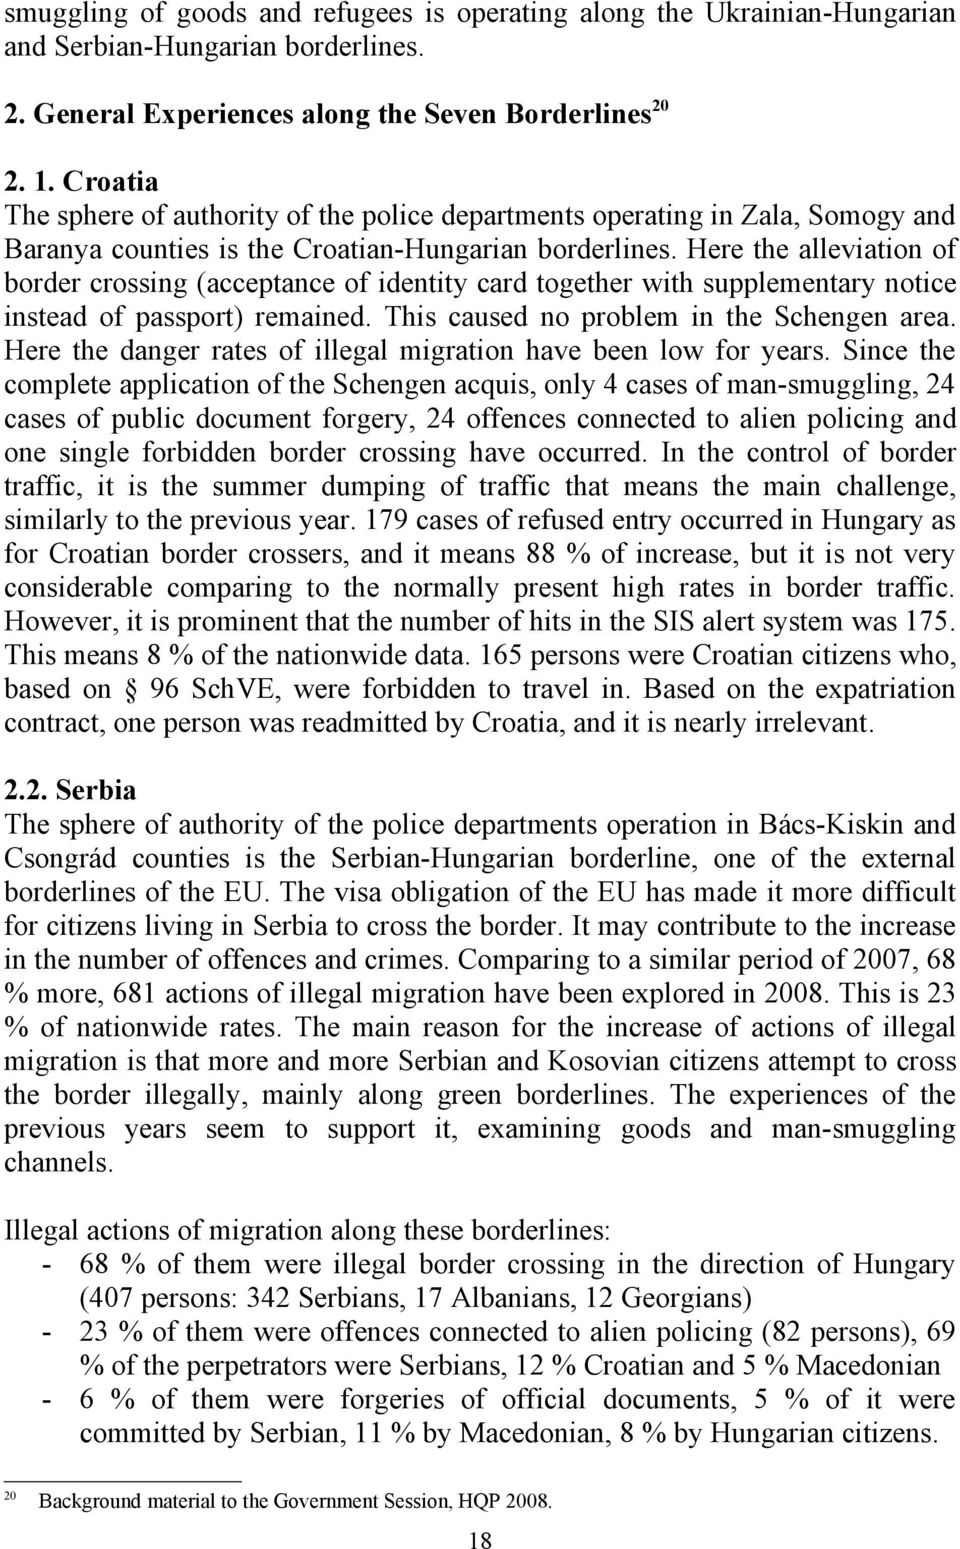 Here the alleviation of border crossing (acceptance of identity card together with supplementary notice instead of passport) remained. This caused no problem in the Schengen area.